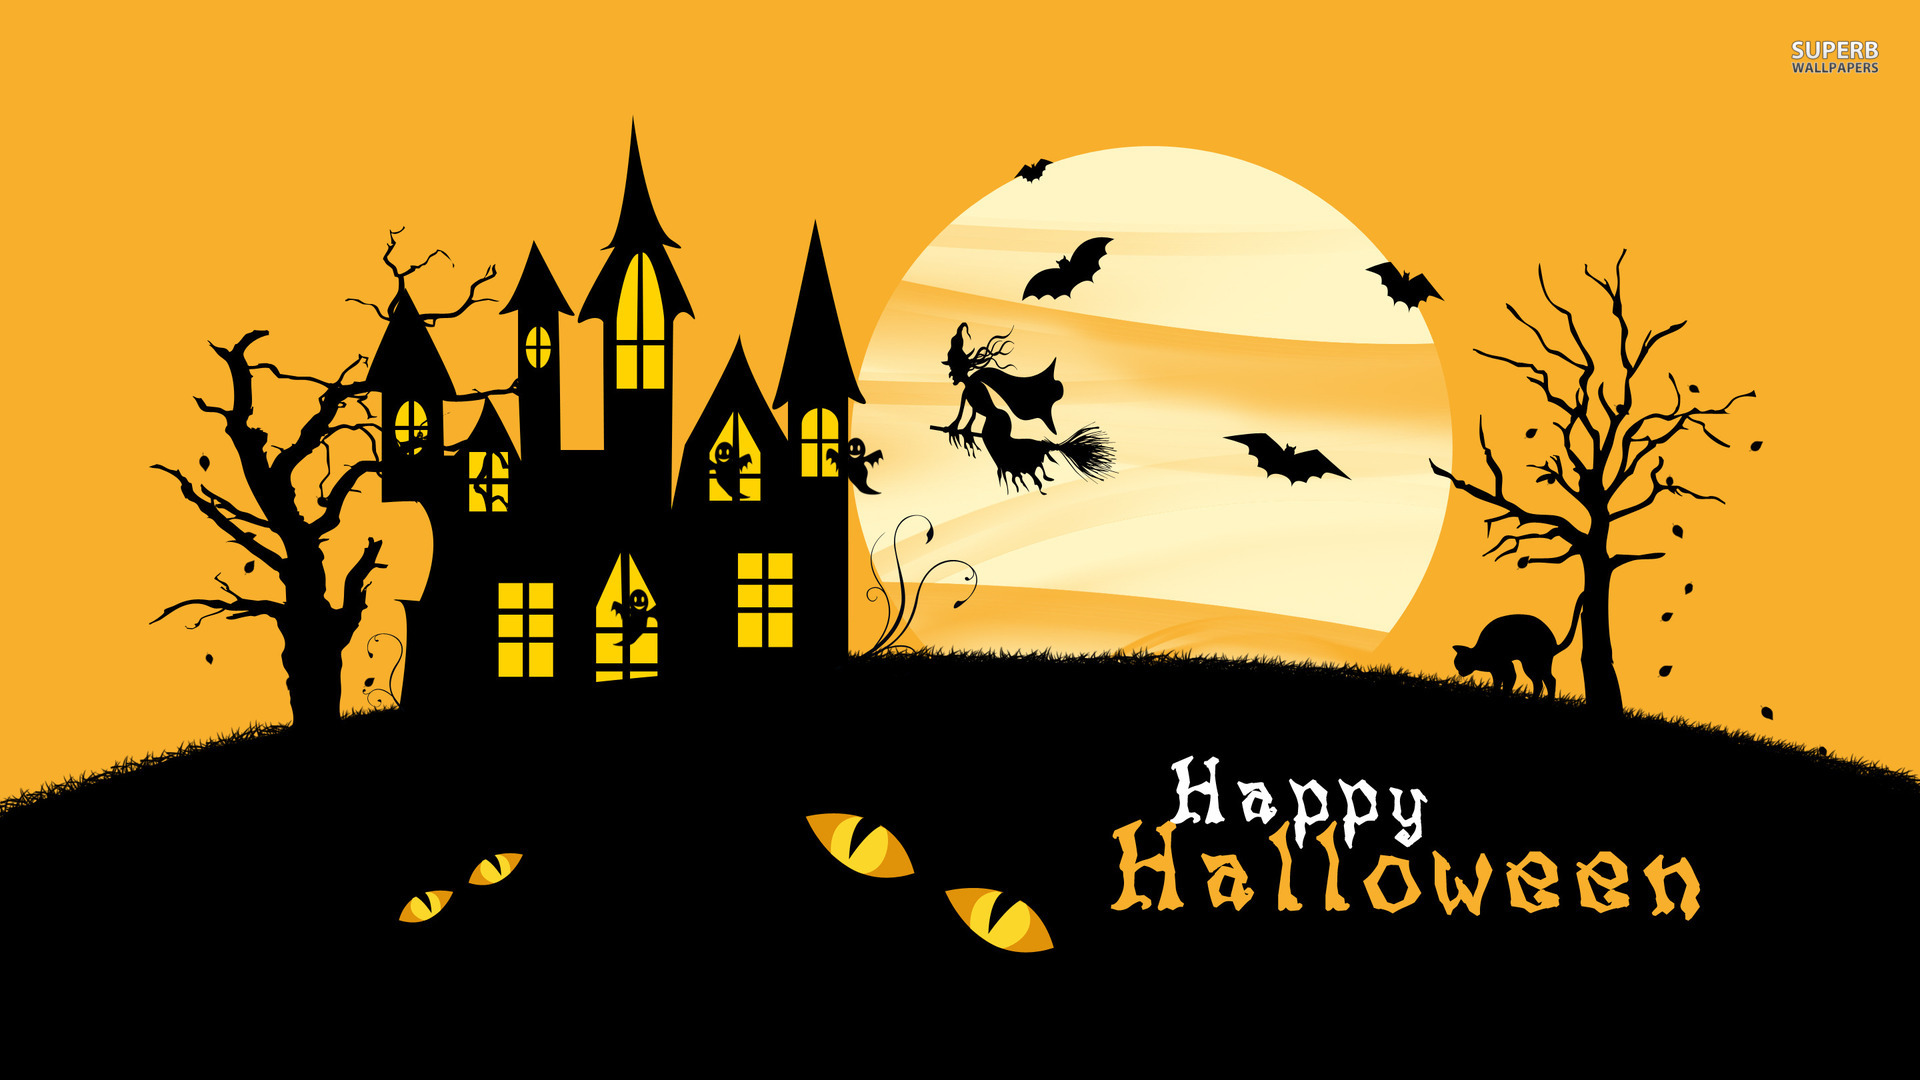 HOLIDAY: HAPPY HALLOWEEN 2015